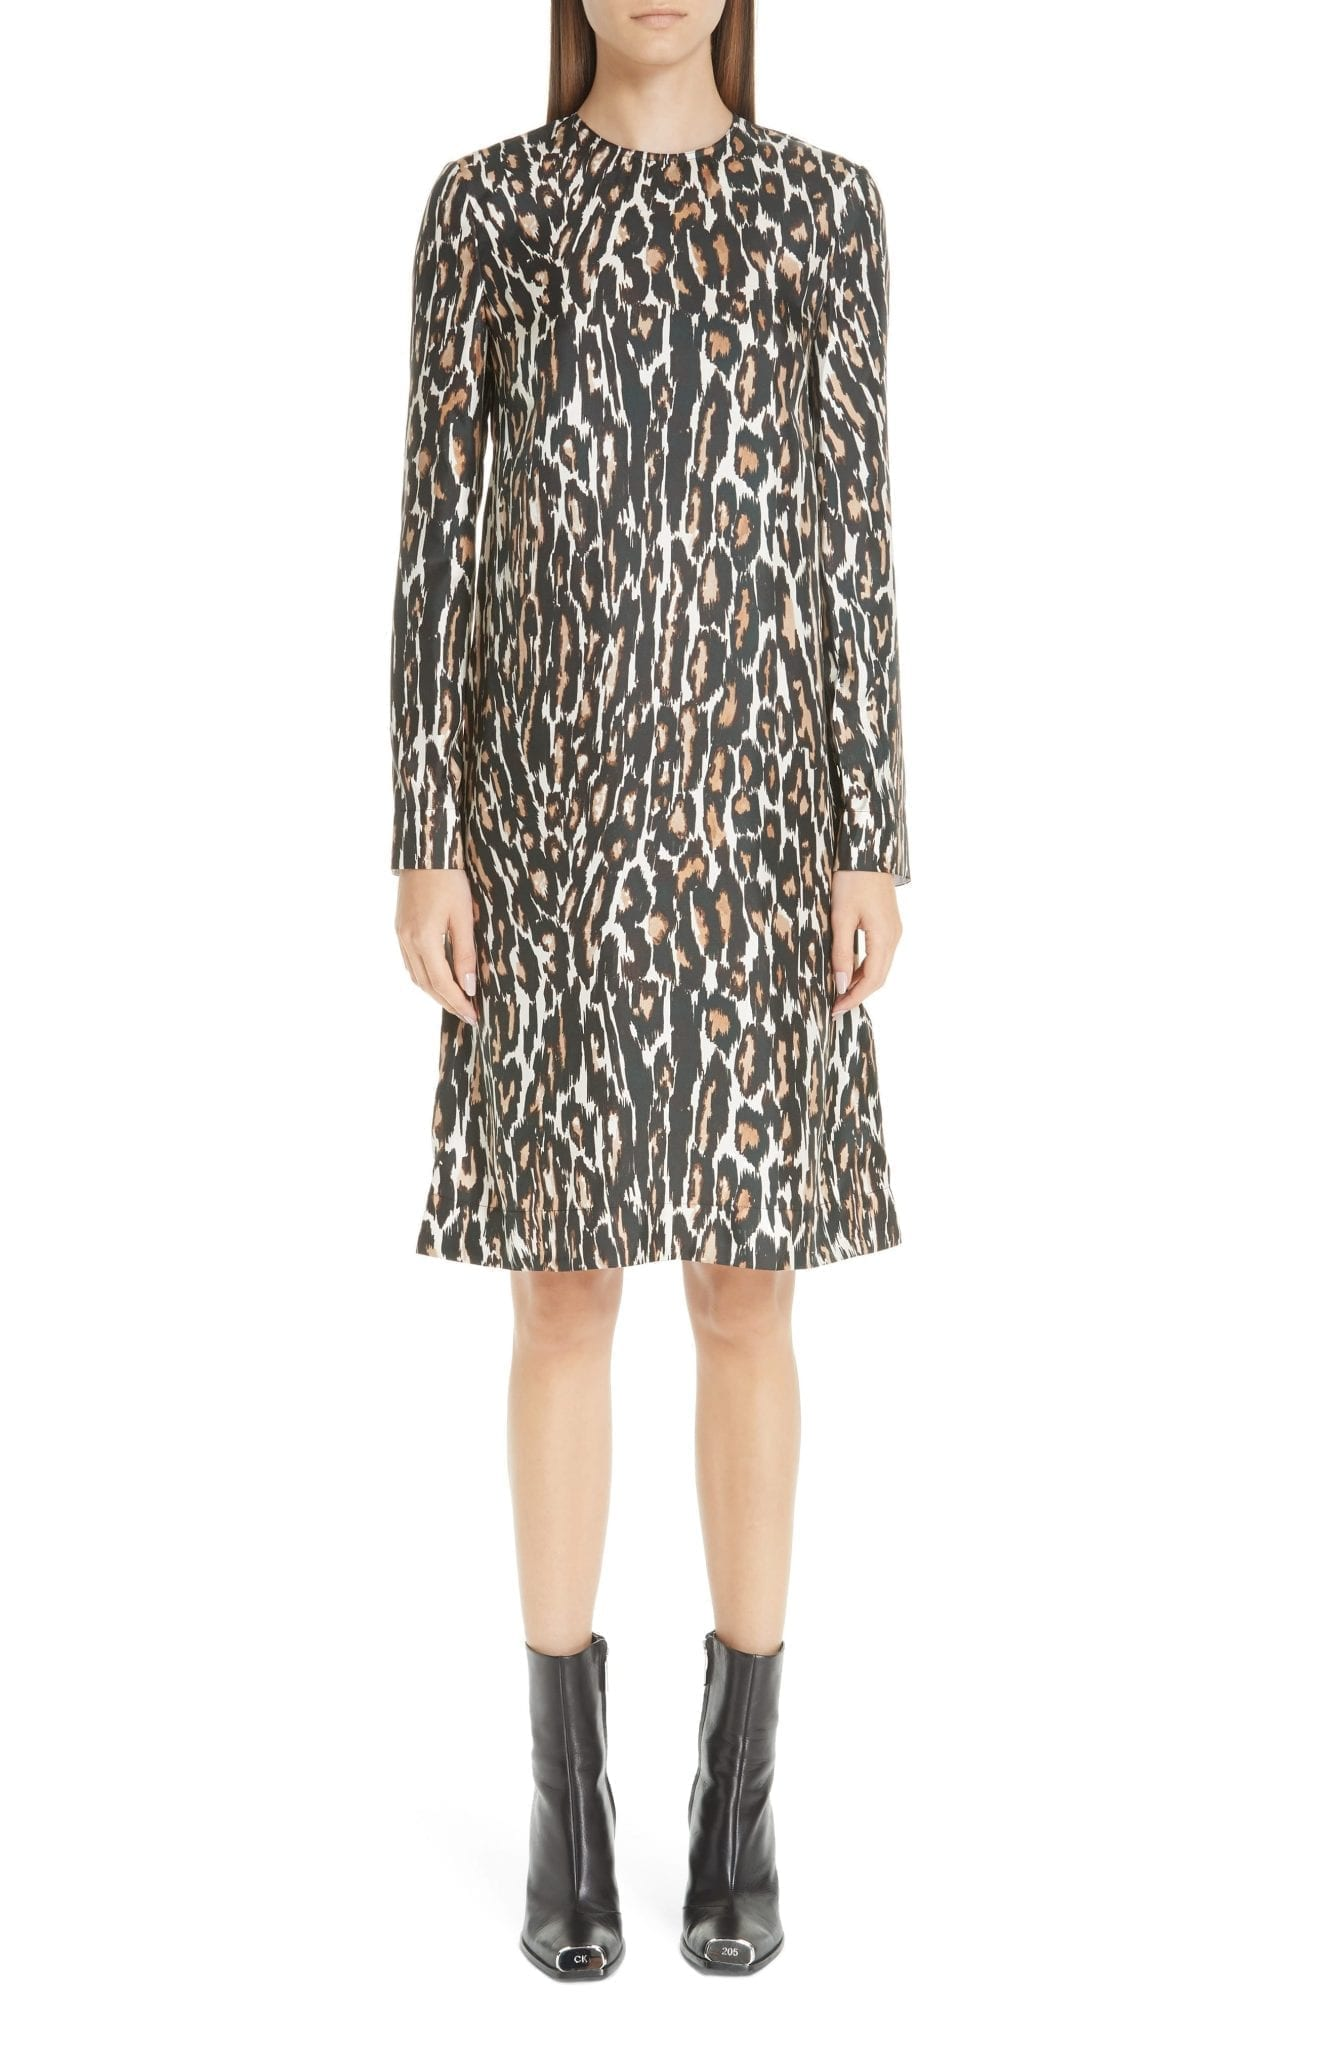 CALVIN KLEIN 205W39NYC Leopard Print Silk Twill Shift Multicolored Dress